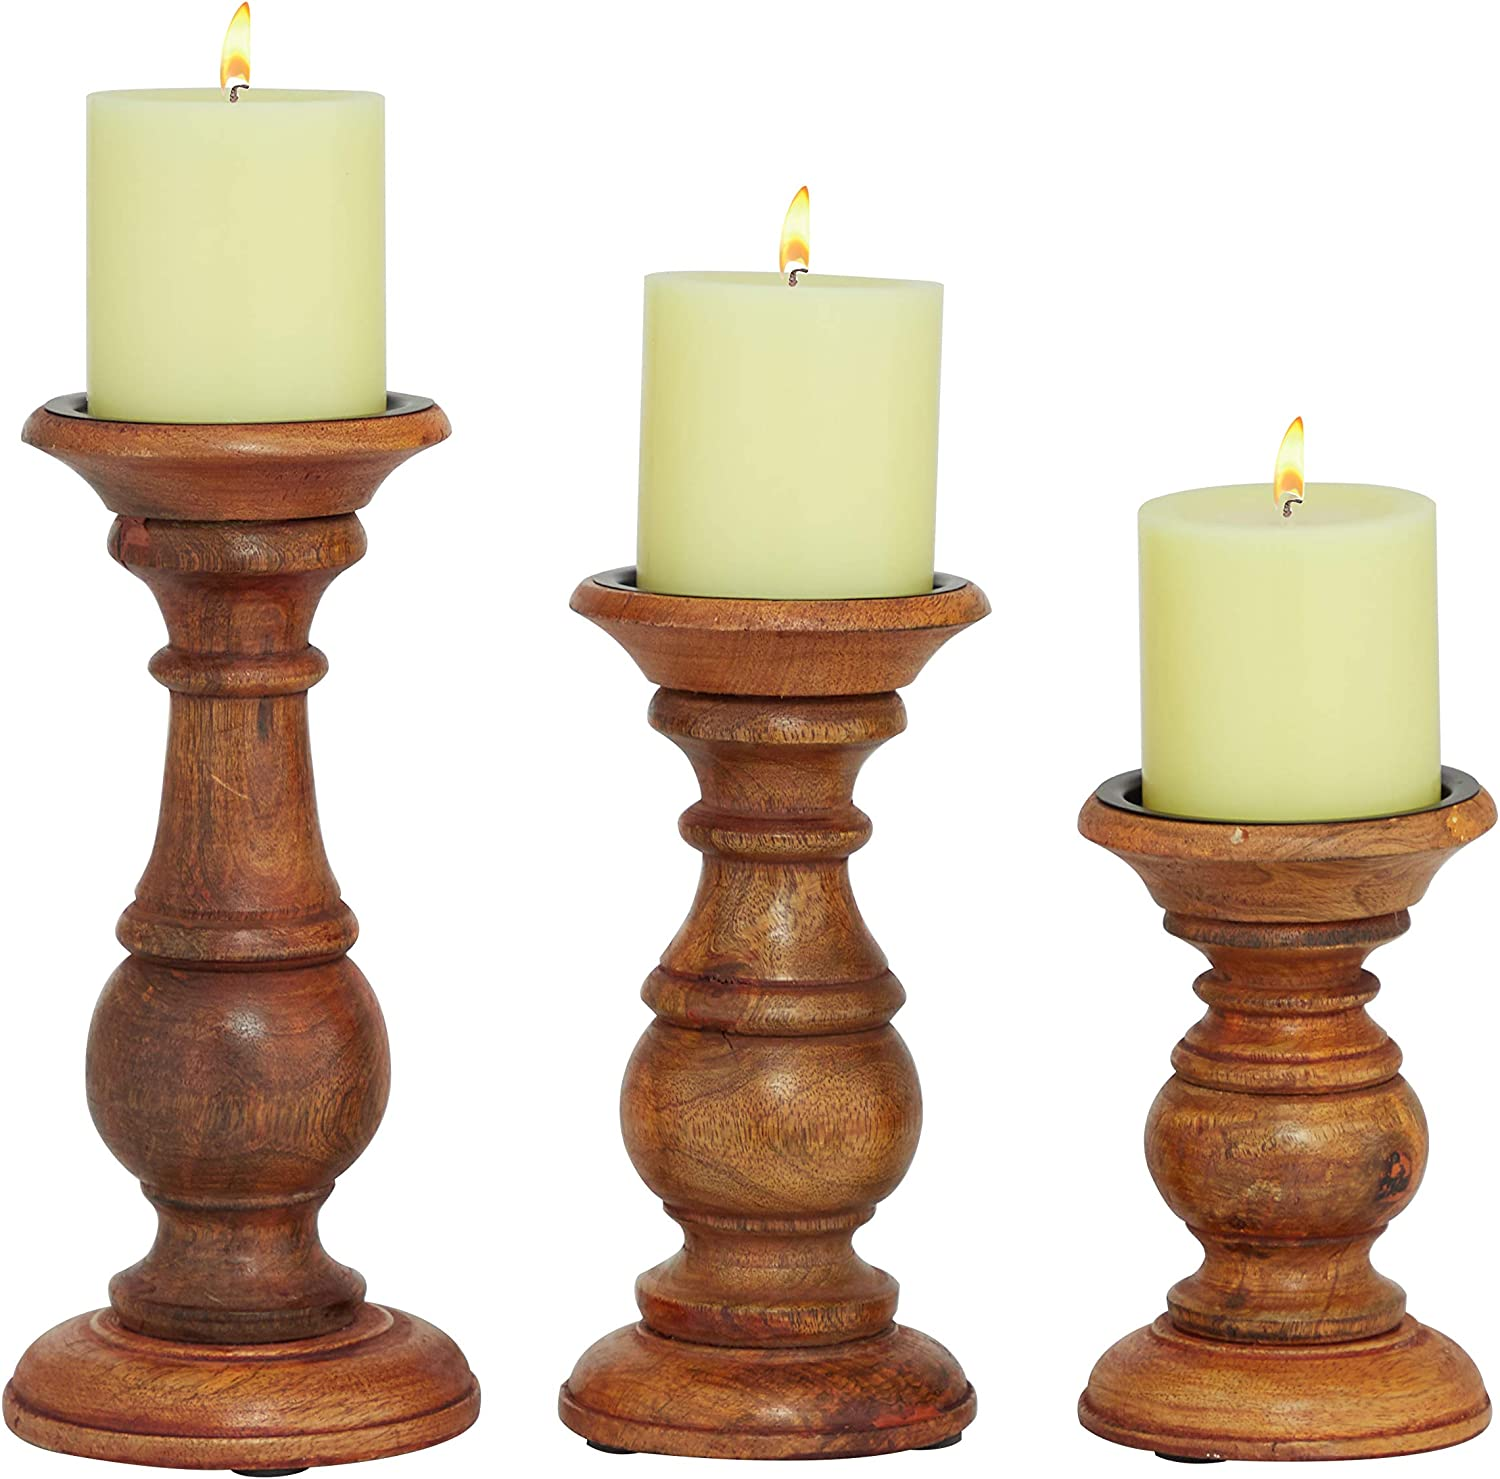 Medium Brown Deco 79 Candle Holder Sets Silver White